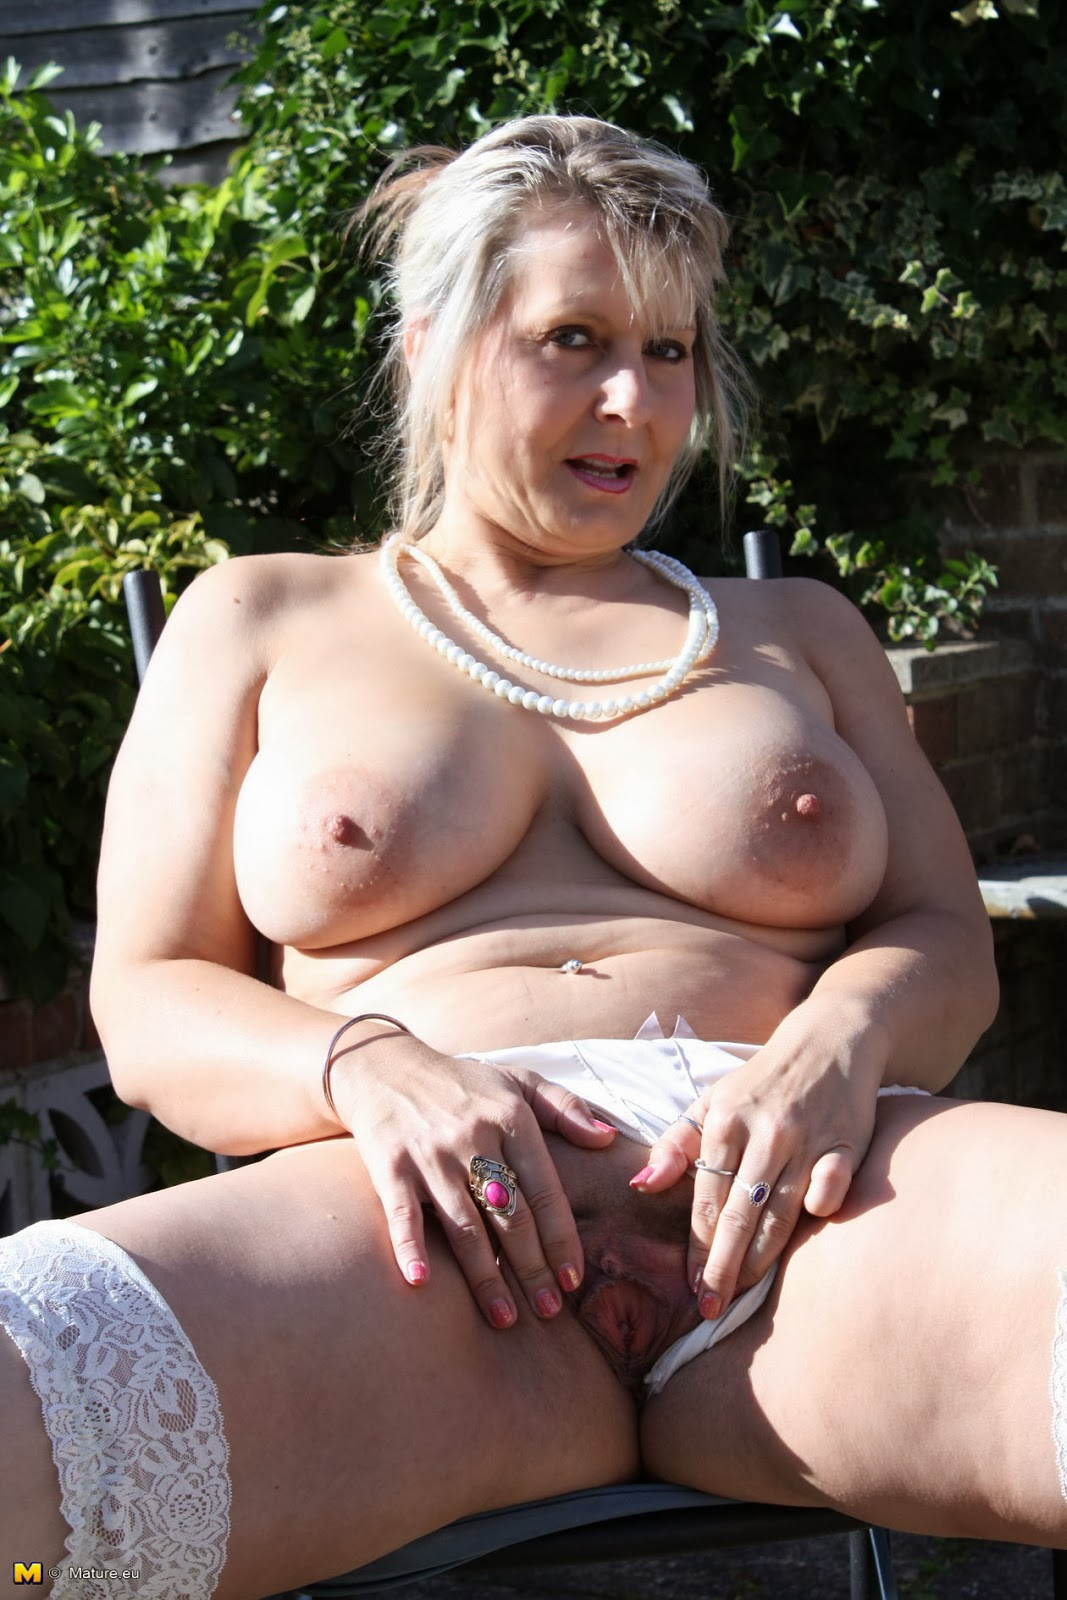 Solo Old Women Pictures 73